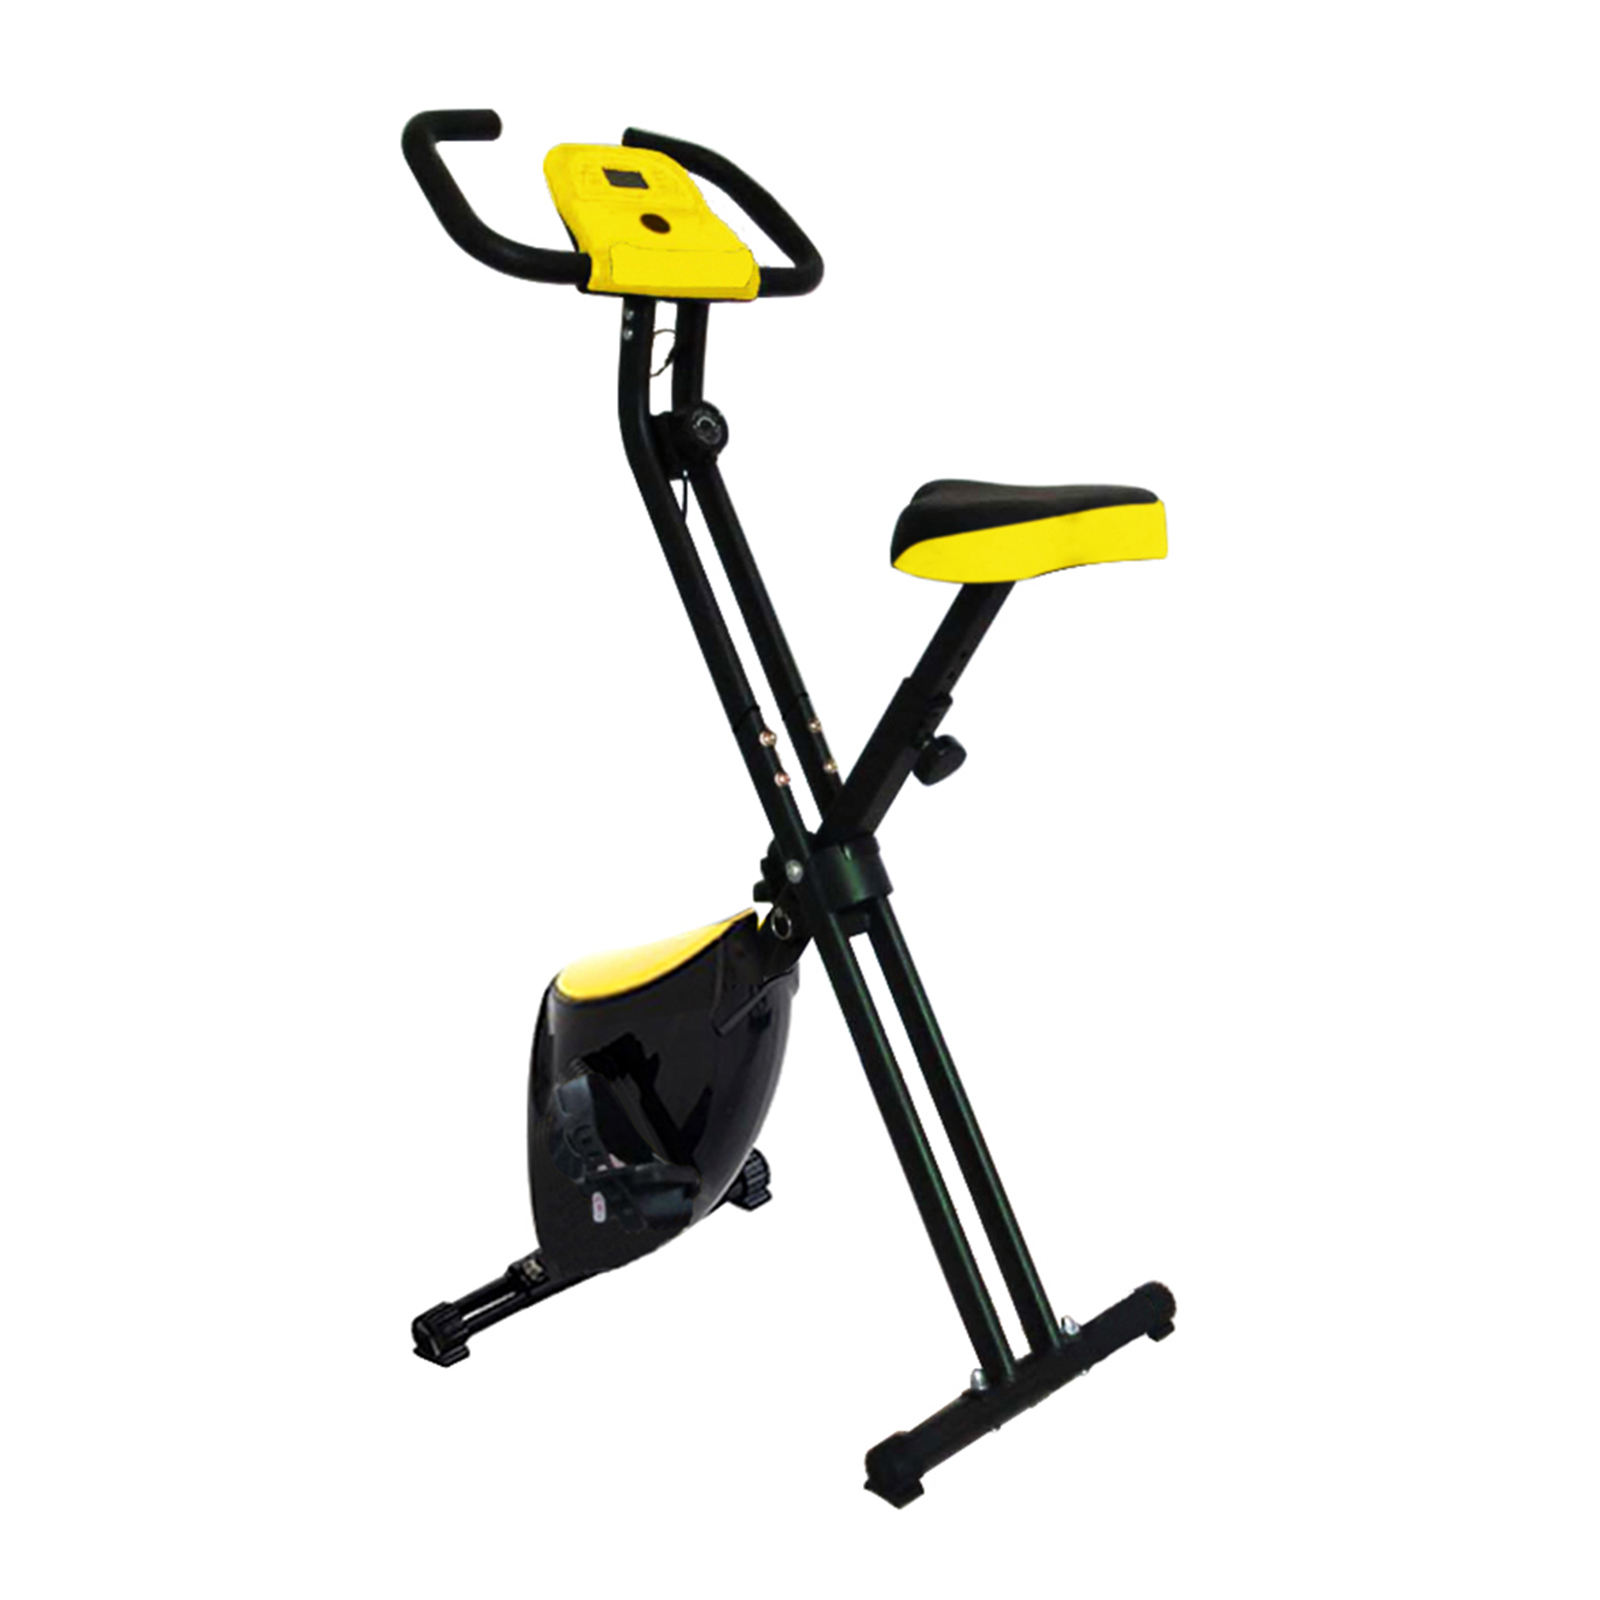 Indoor body building home gym equipment fitness machine exercise folding magnetic static bicycle sports spin bike